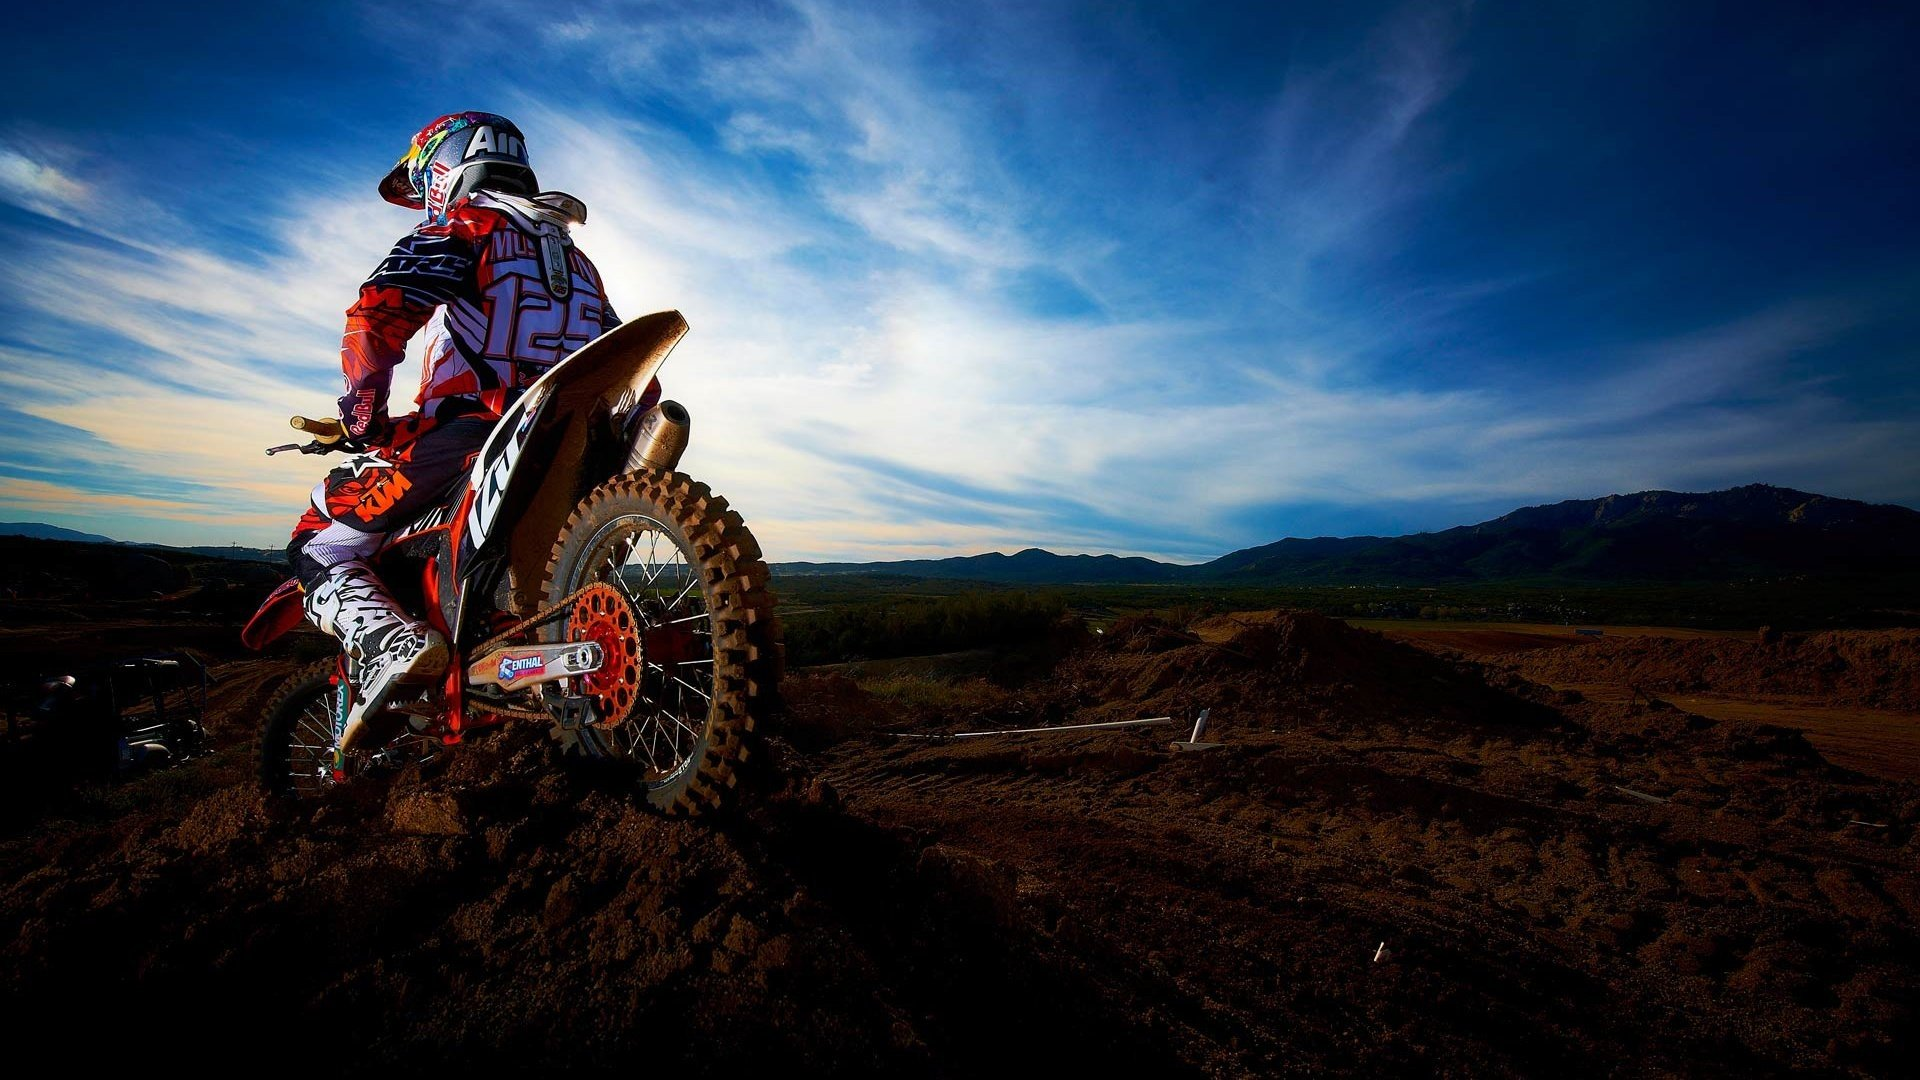 Motocross HD wallpaper 1920x1080 15698 1920x1080